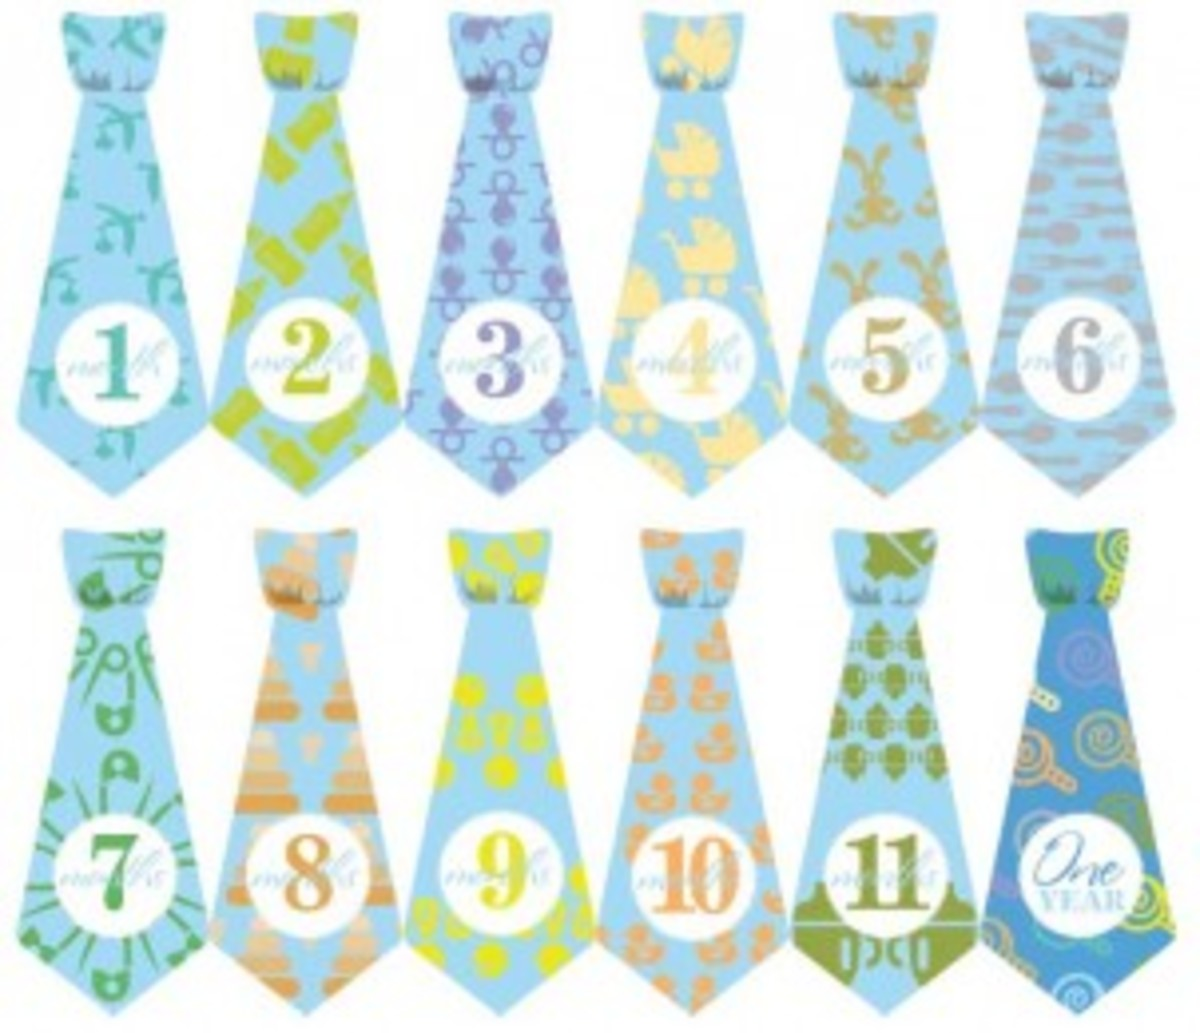 EvREwares: Wearable Fabric Stickers for All Occasion Fun ...